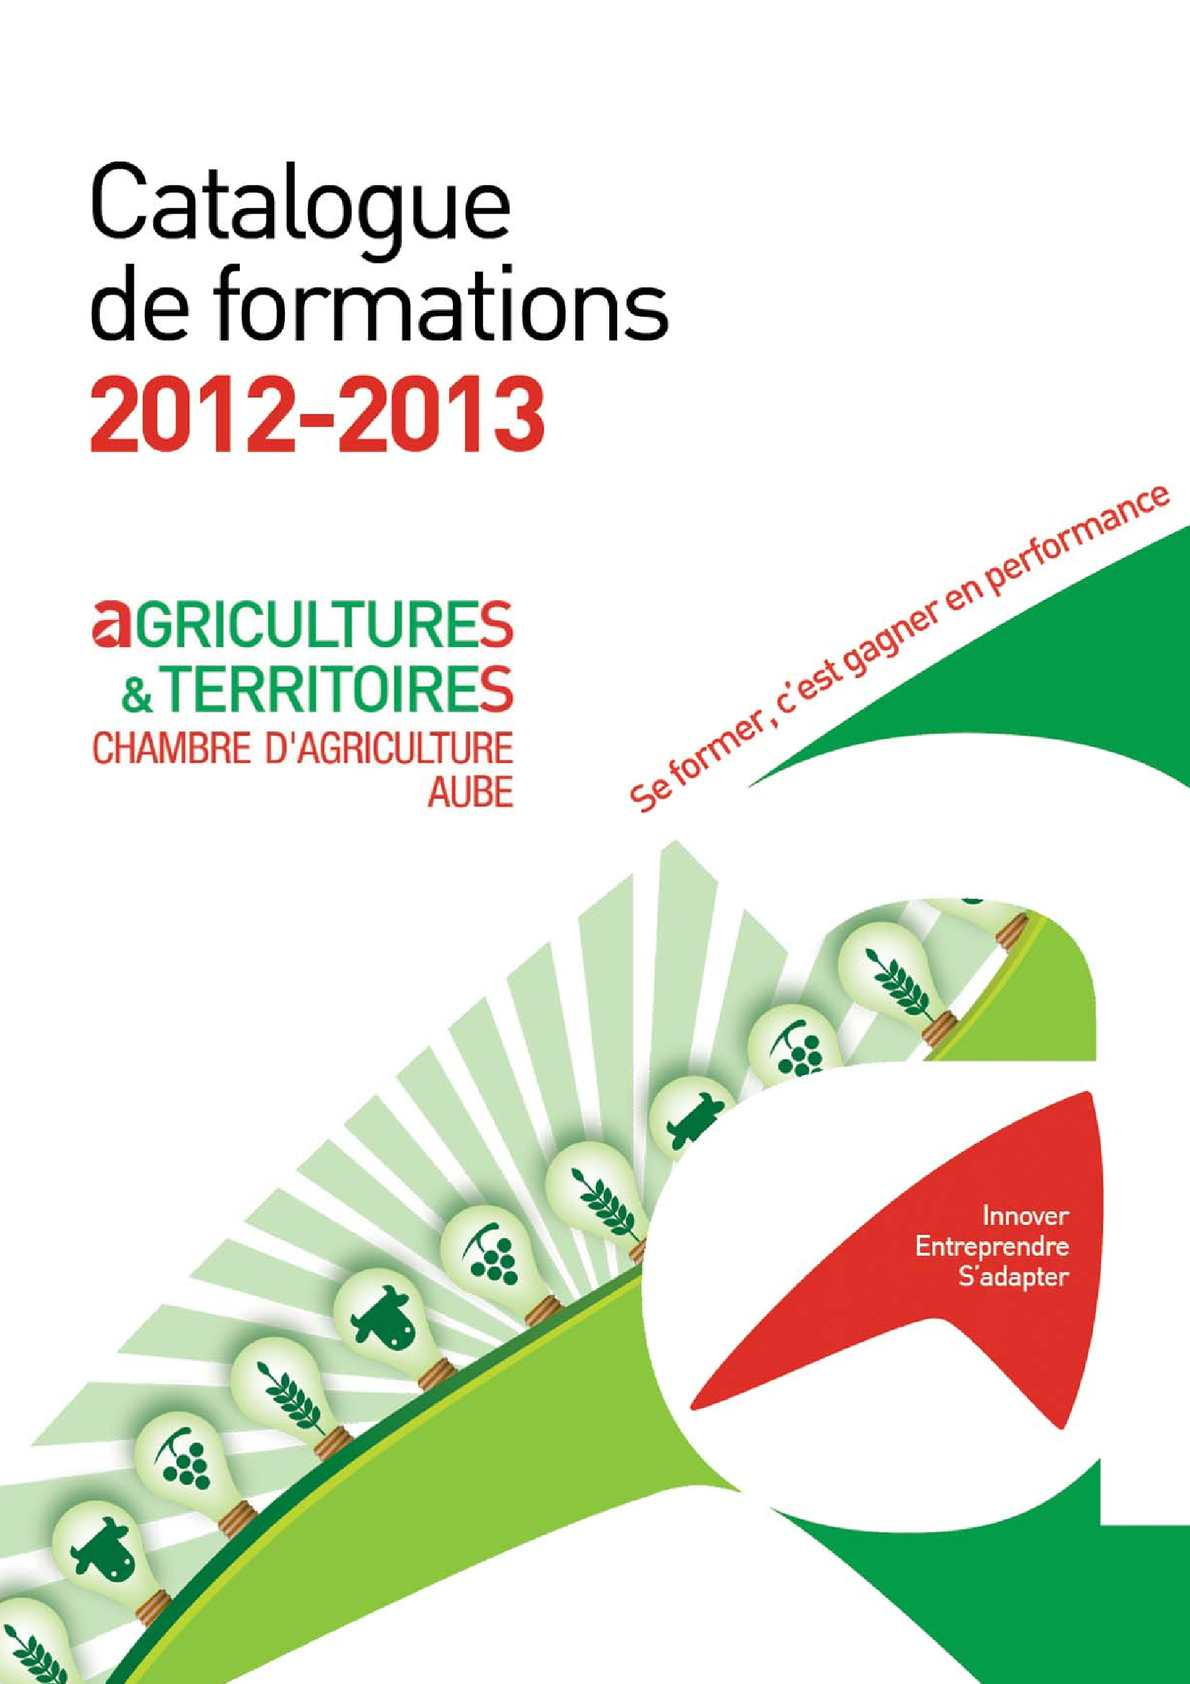 Calam o catalogue formation 2012 2013 - Chambre agriculture aube ...